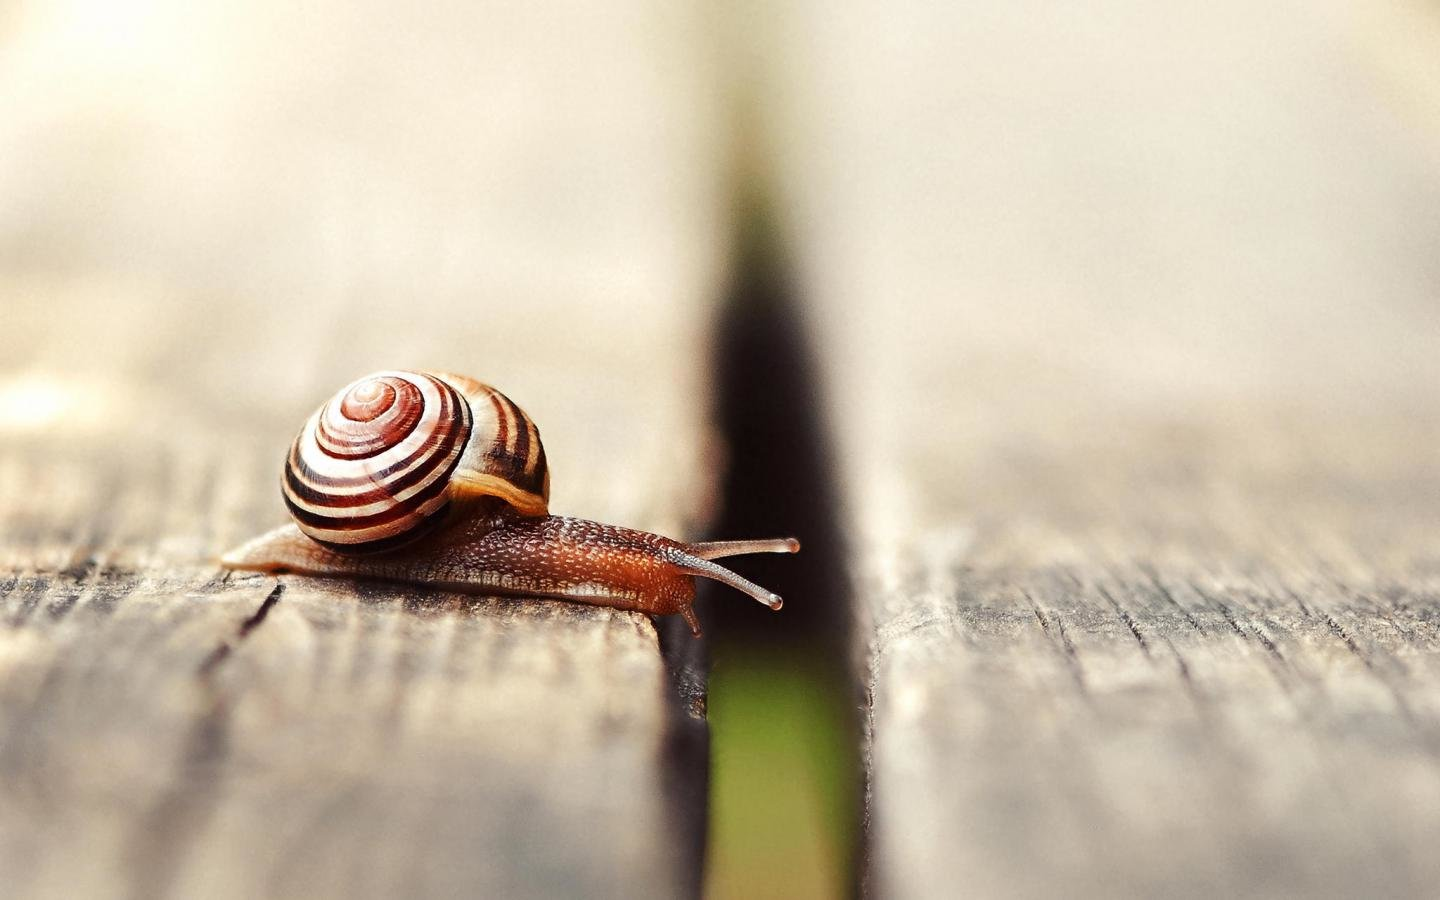 Free download Snail wallpaper ID:198939 hd 1440x900 for computer